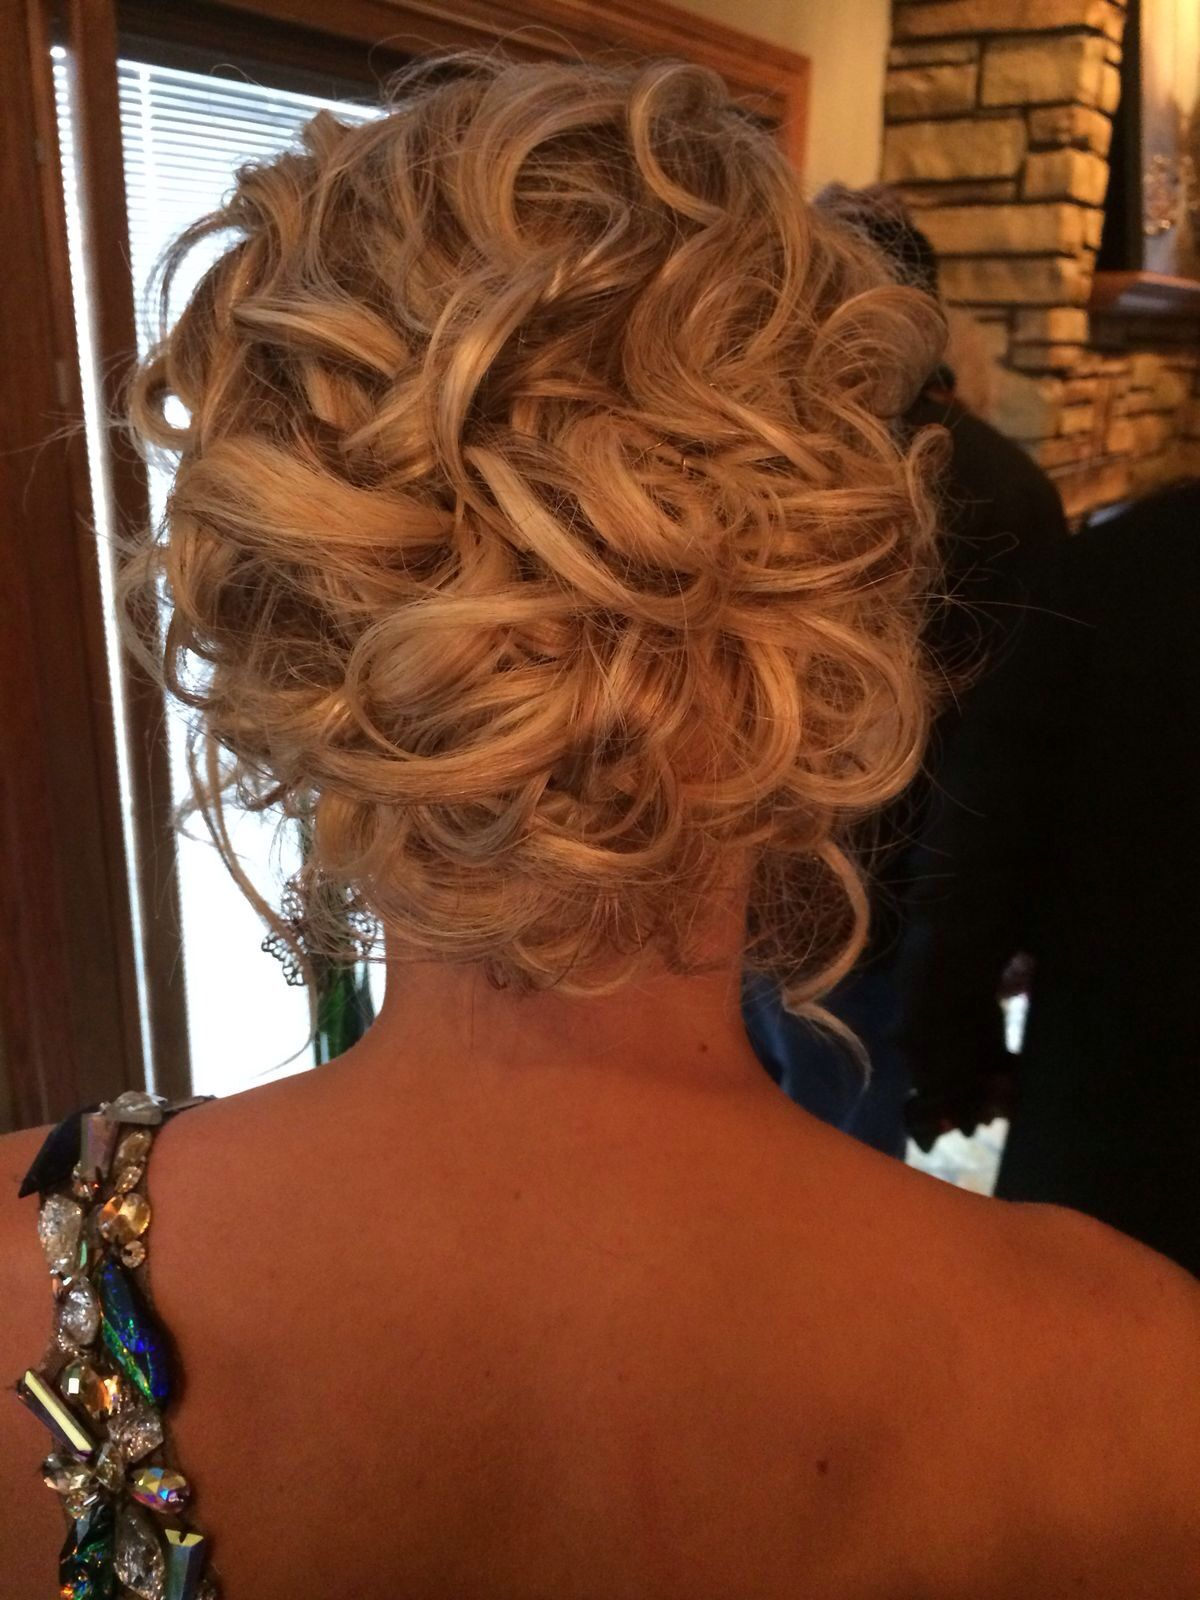 Prom hair updo things i love pinterest prom hair updo prom